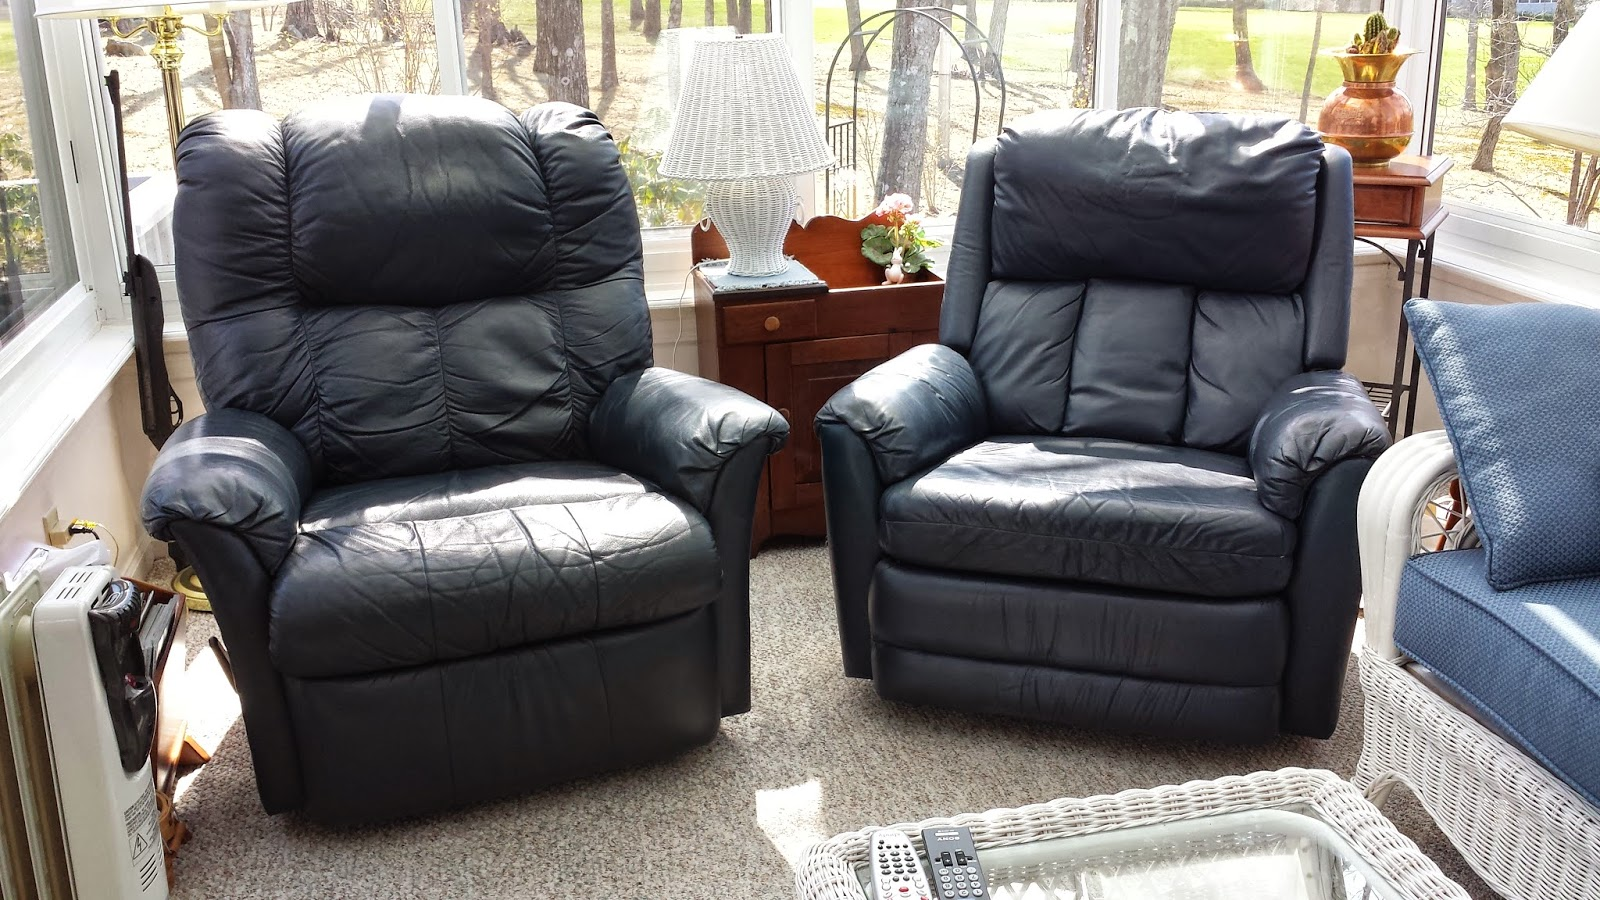 His and Hers Navy Leather Recliners & MAYS The Downsizers: May 2015 islam-shia.org